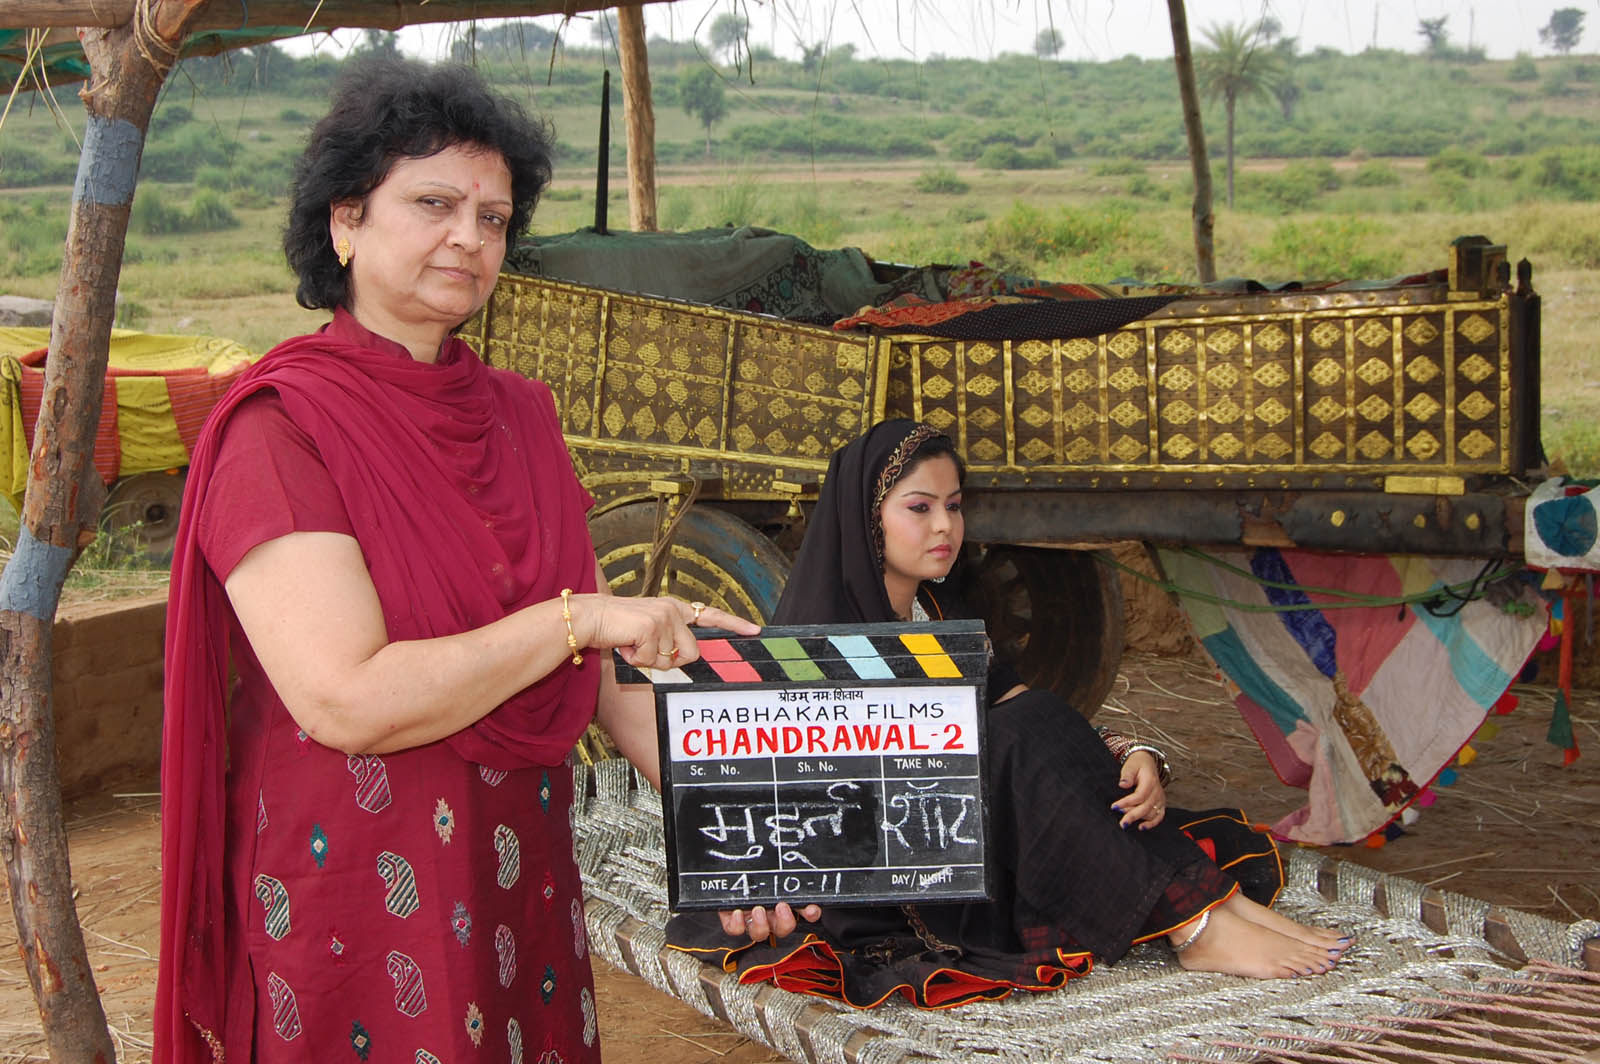 In age of Bollywood sequels, Haryanvi film to test waters